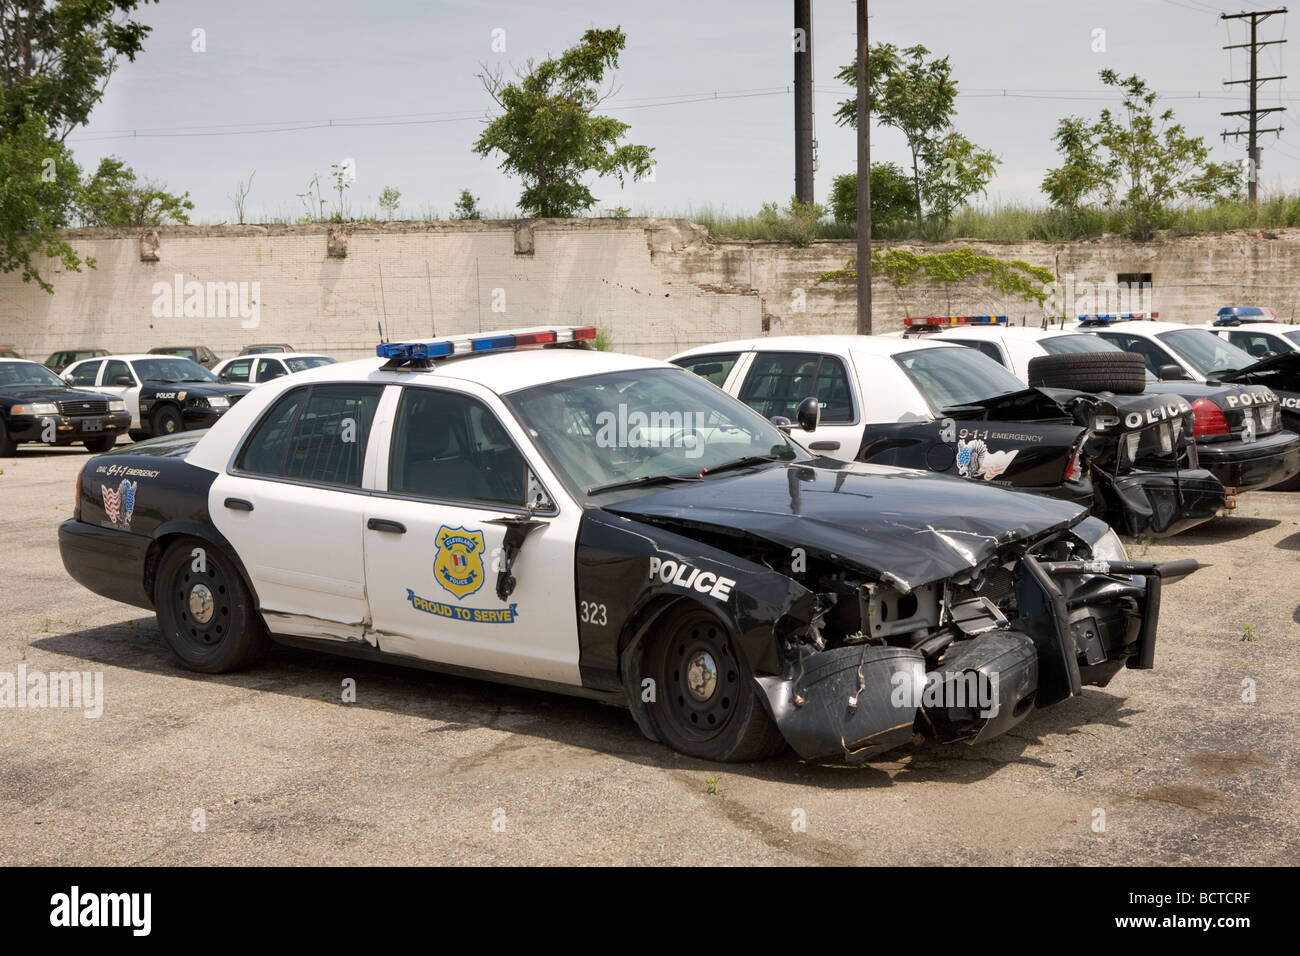 Wrecked police cars Cleveland Ohio Stock Photo: 25123155 - Alamy